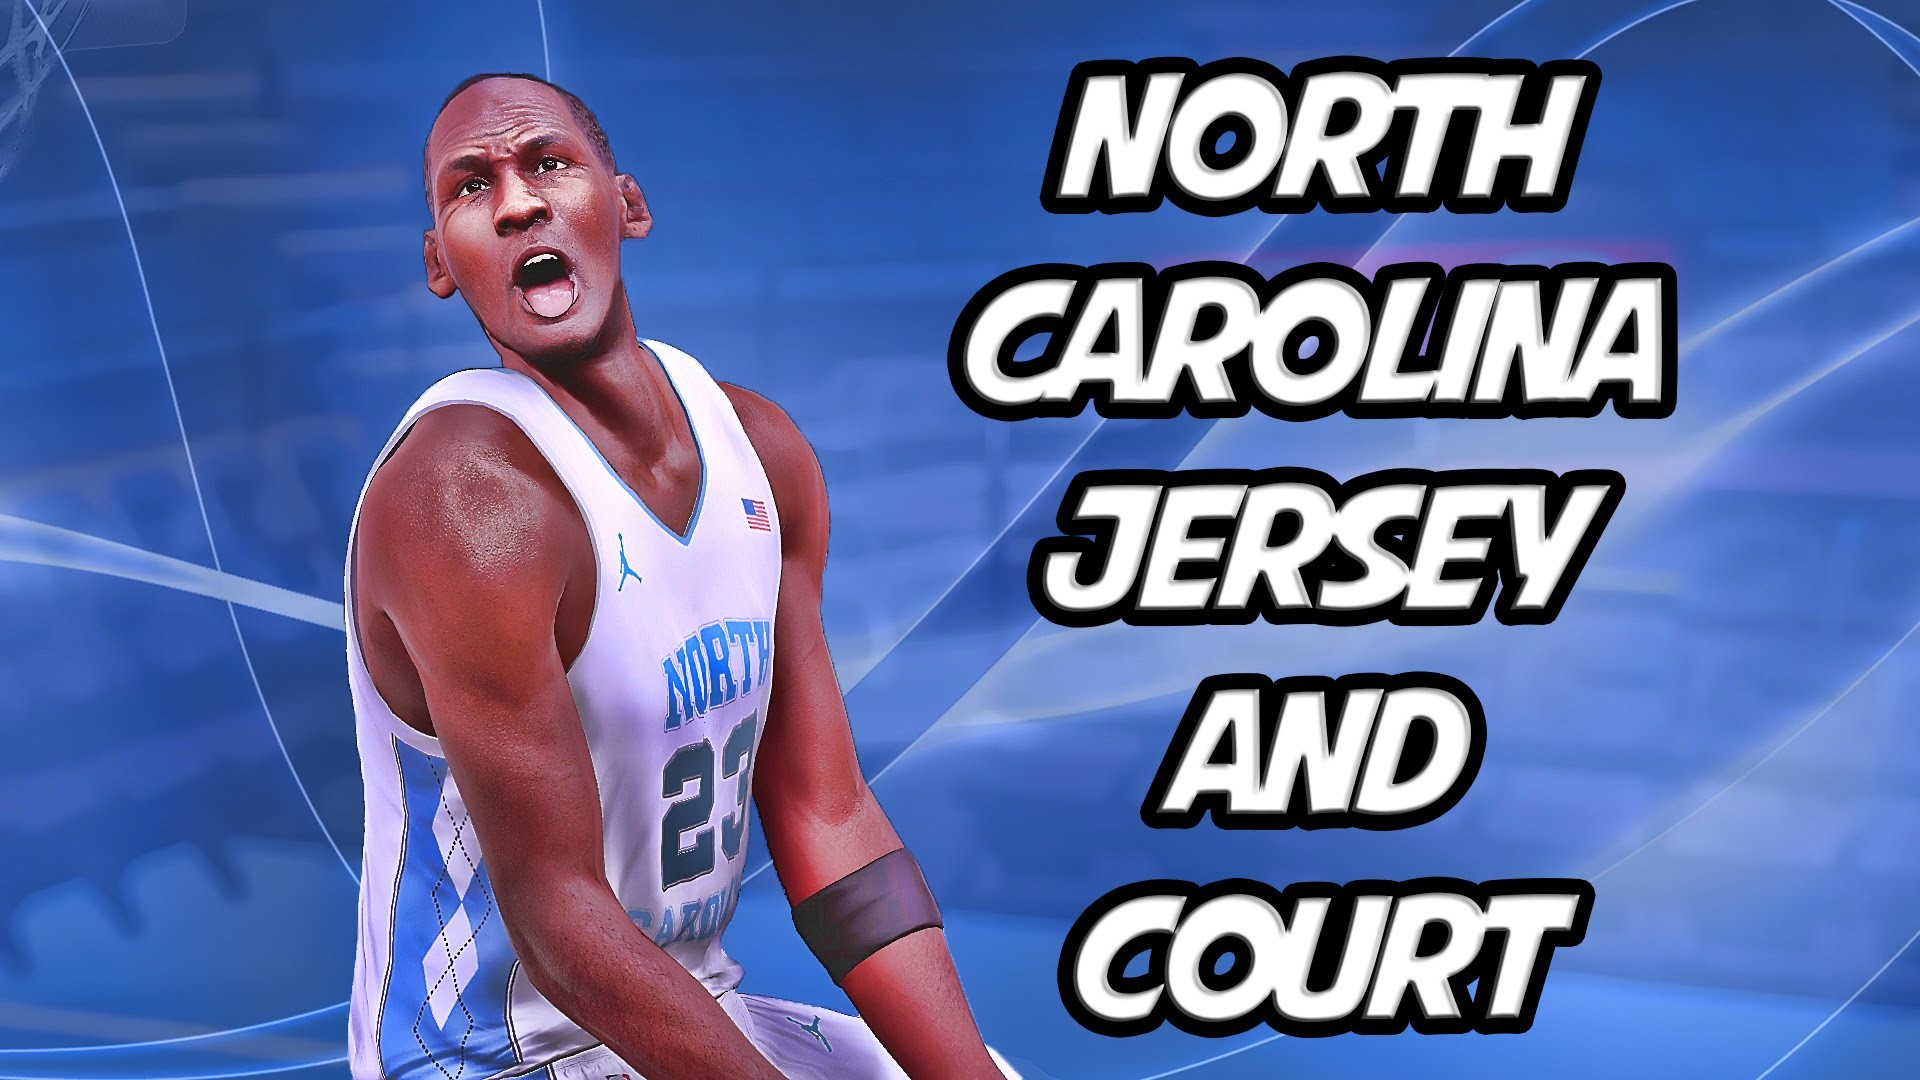 1920x1080 NBA 2K16 MyTeam - North Carolina Tar Heels Jersey and Court Creation!  #MTMadness - YouTube